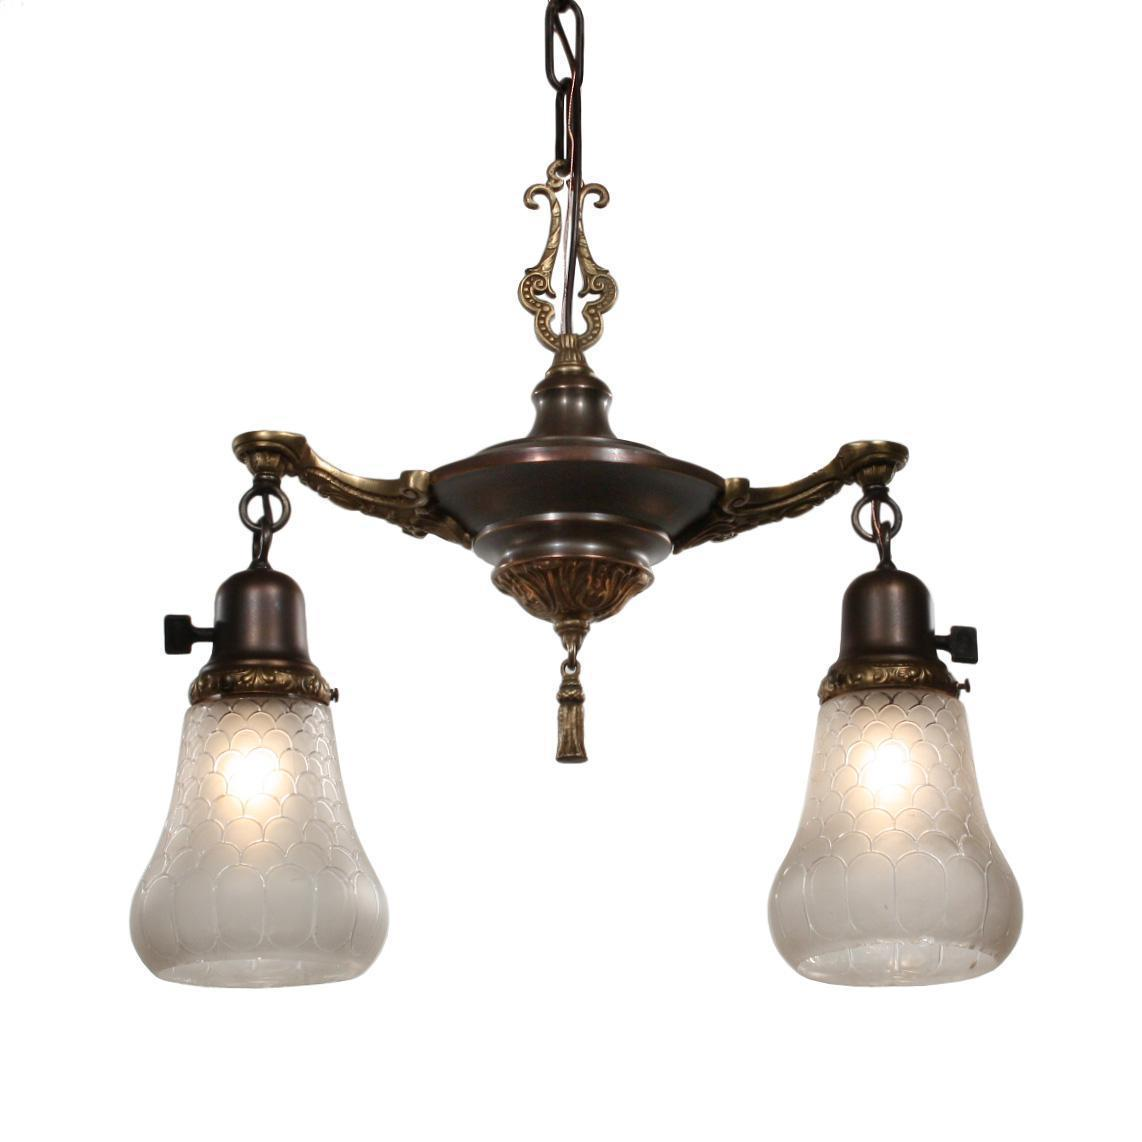 Charming Antique Two Light Chandelier with Glass Shades